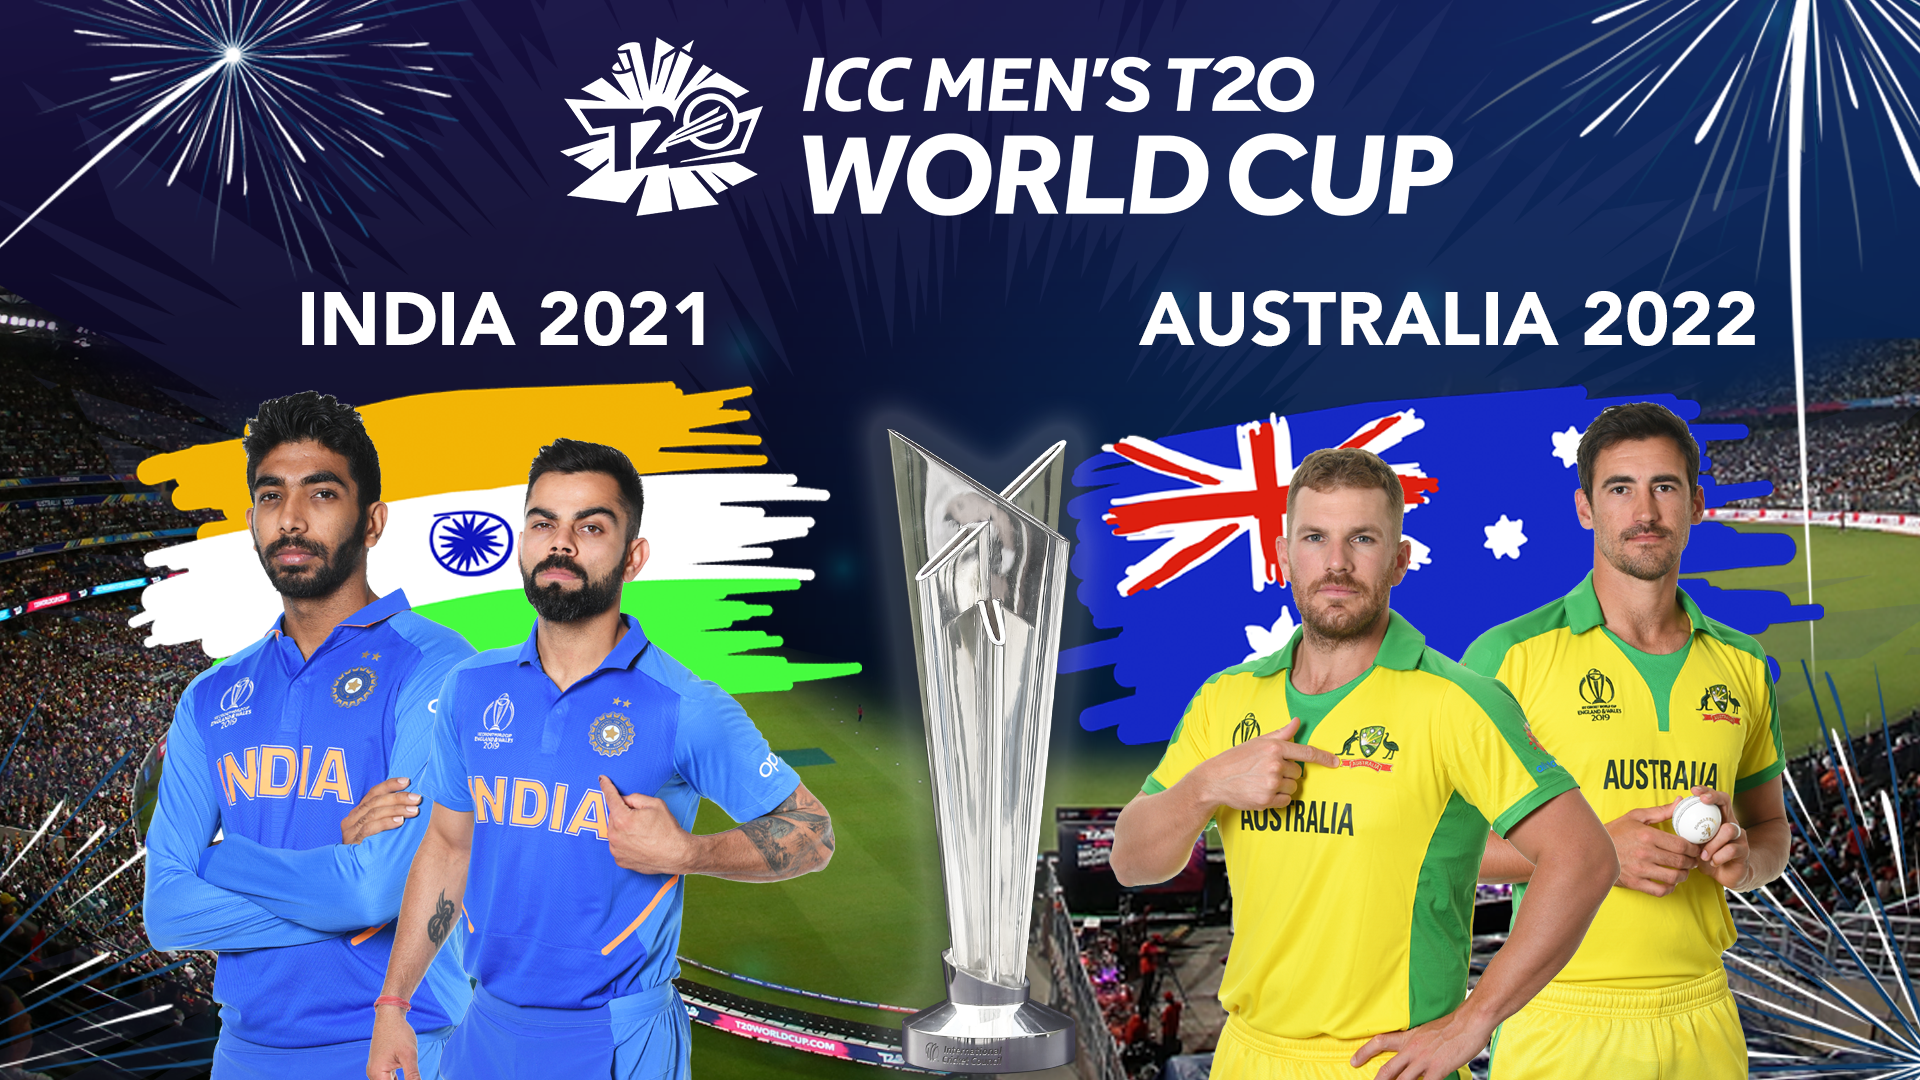 Men's T20WC 2021 in India, 2022 in Australia; Women's CWC postponed